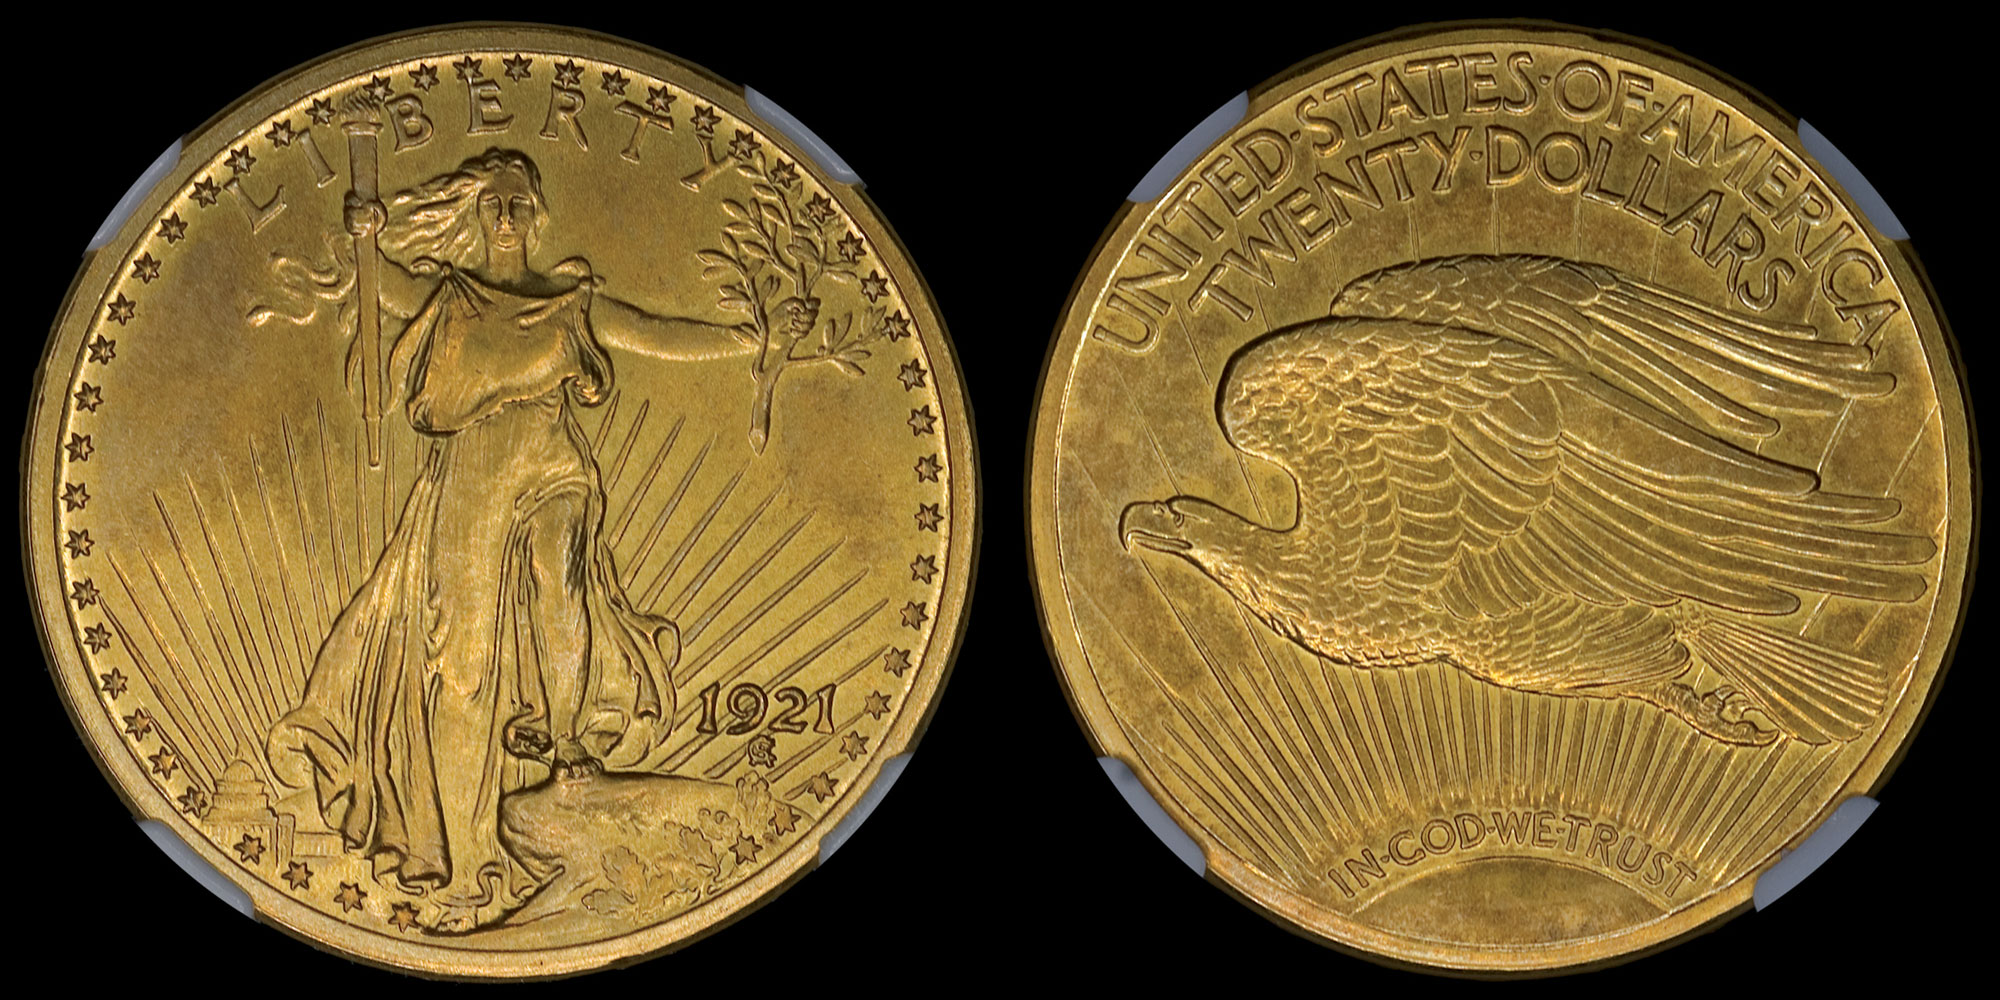 Proof 1921 Saint-Gaudens Double Eagle